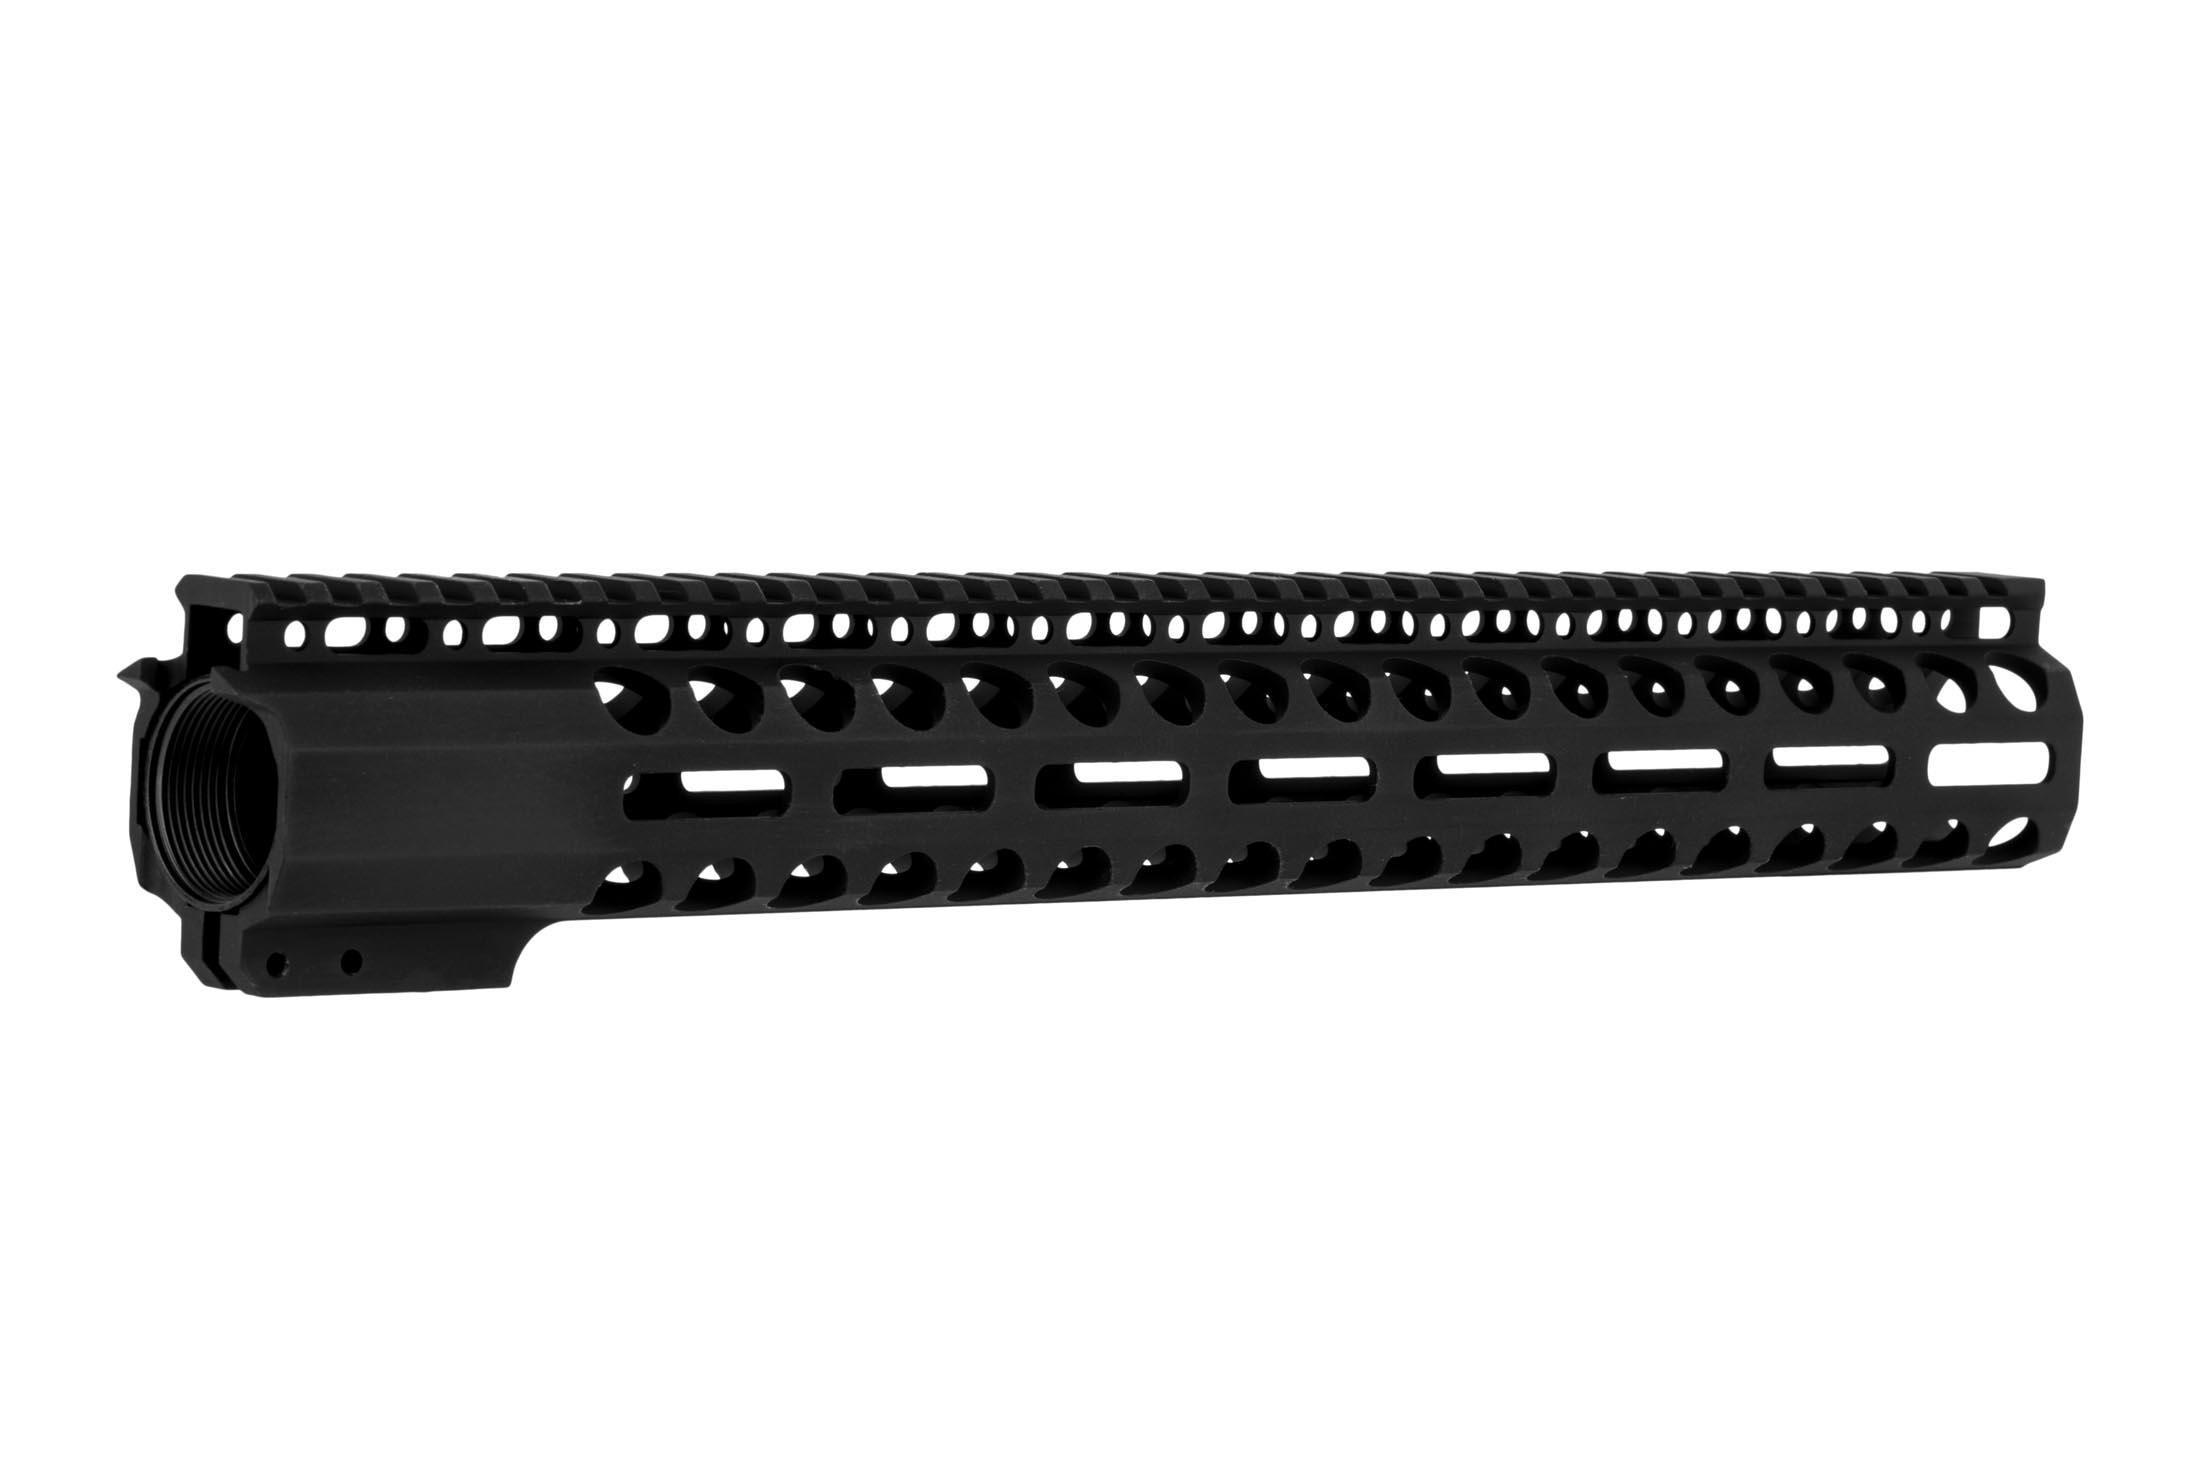 Radical Firearms 15 in Primary Arms Exclusive M-LOK rail with 3rd gen mounting system with anti-rotation tabs and a 4140 steel barrel nut